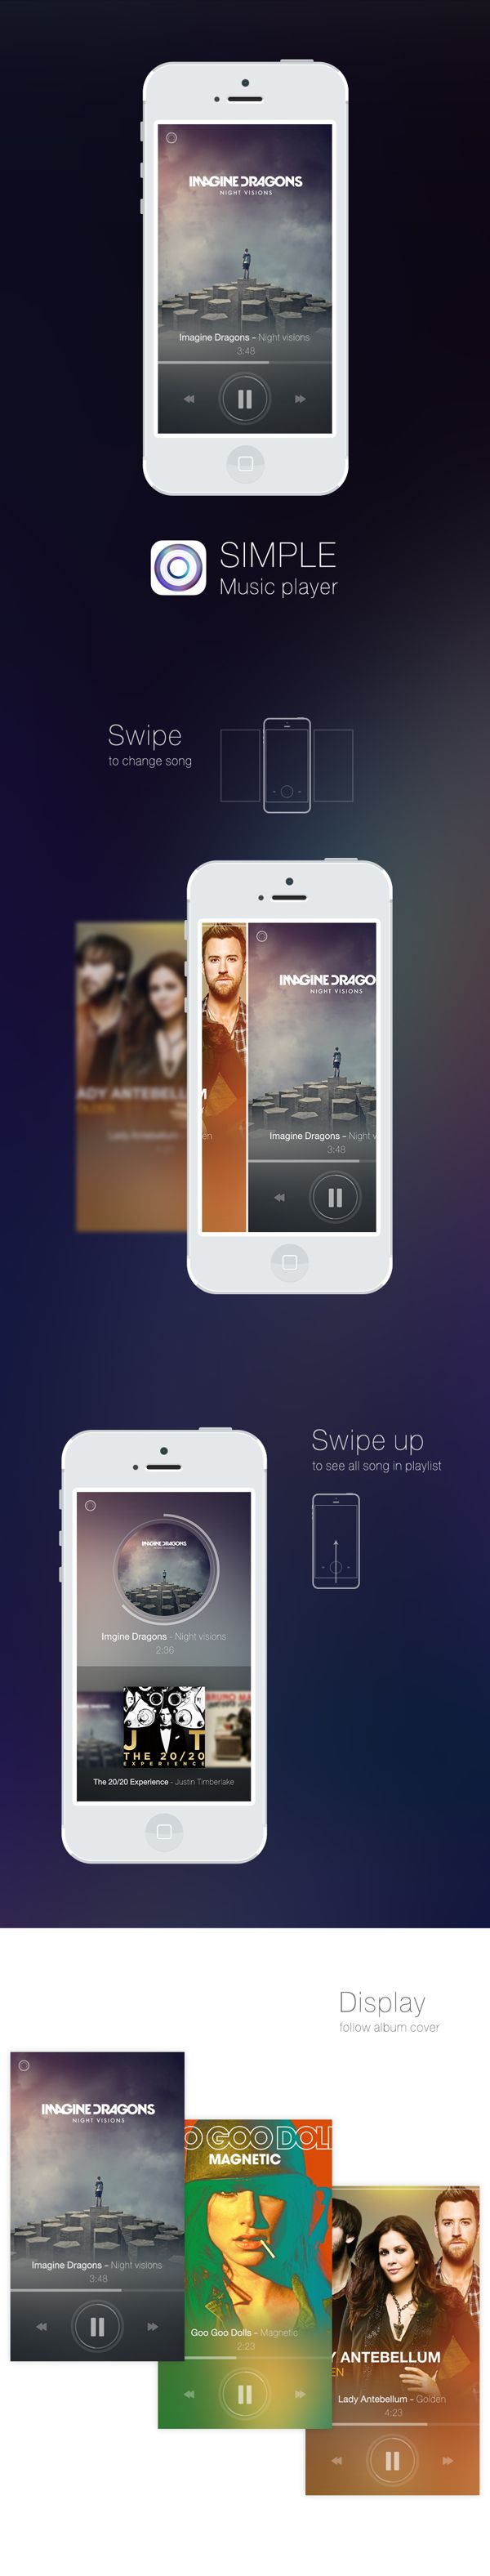 Simple music player by DSEEER Kate, via Behance